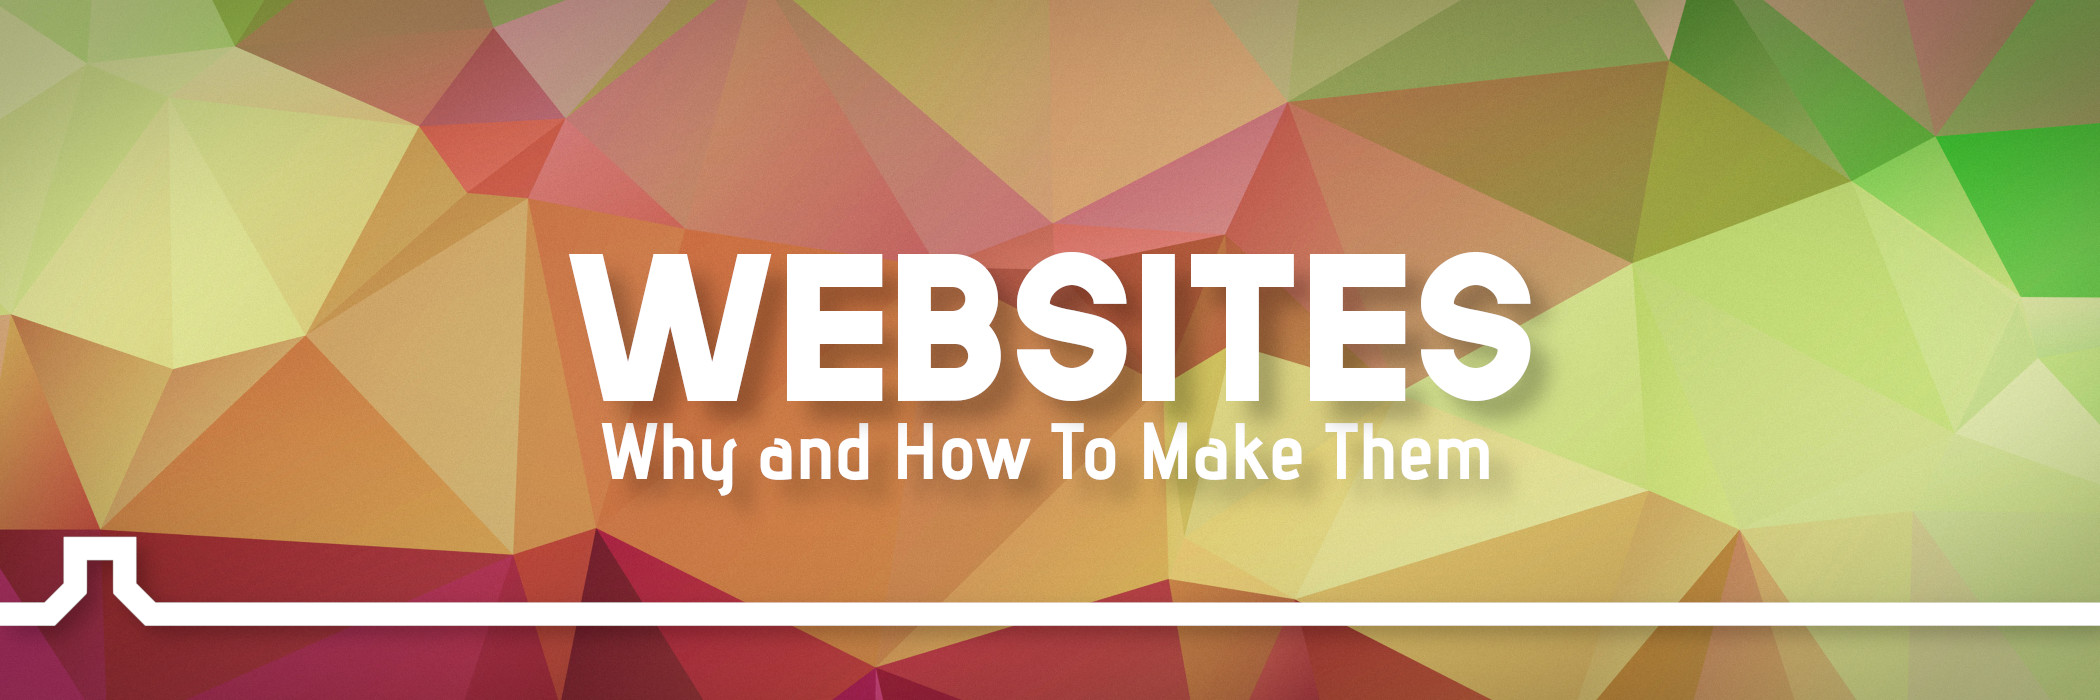 Personal Websites: Why and How To Make Them